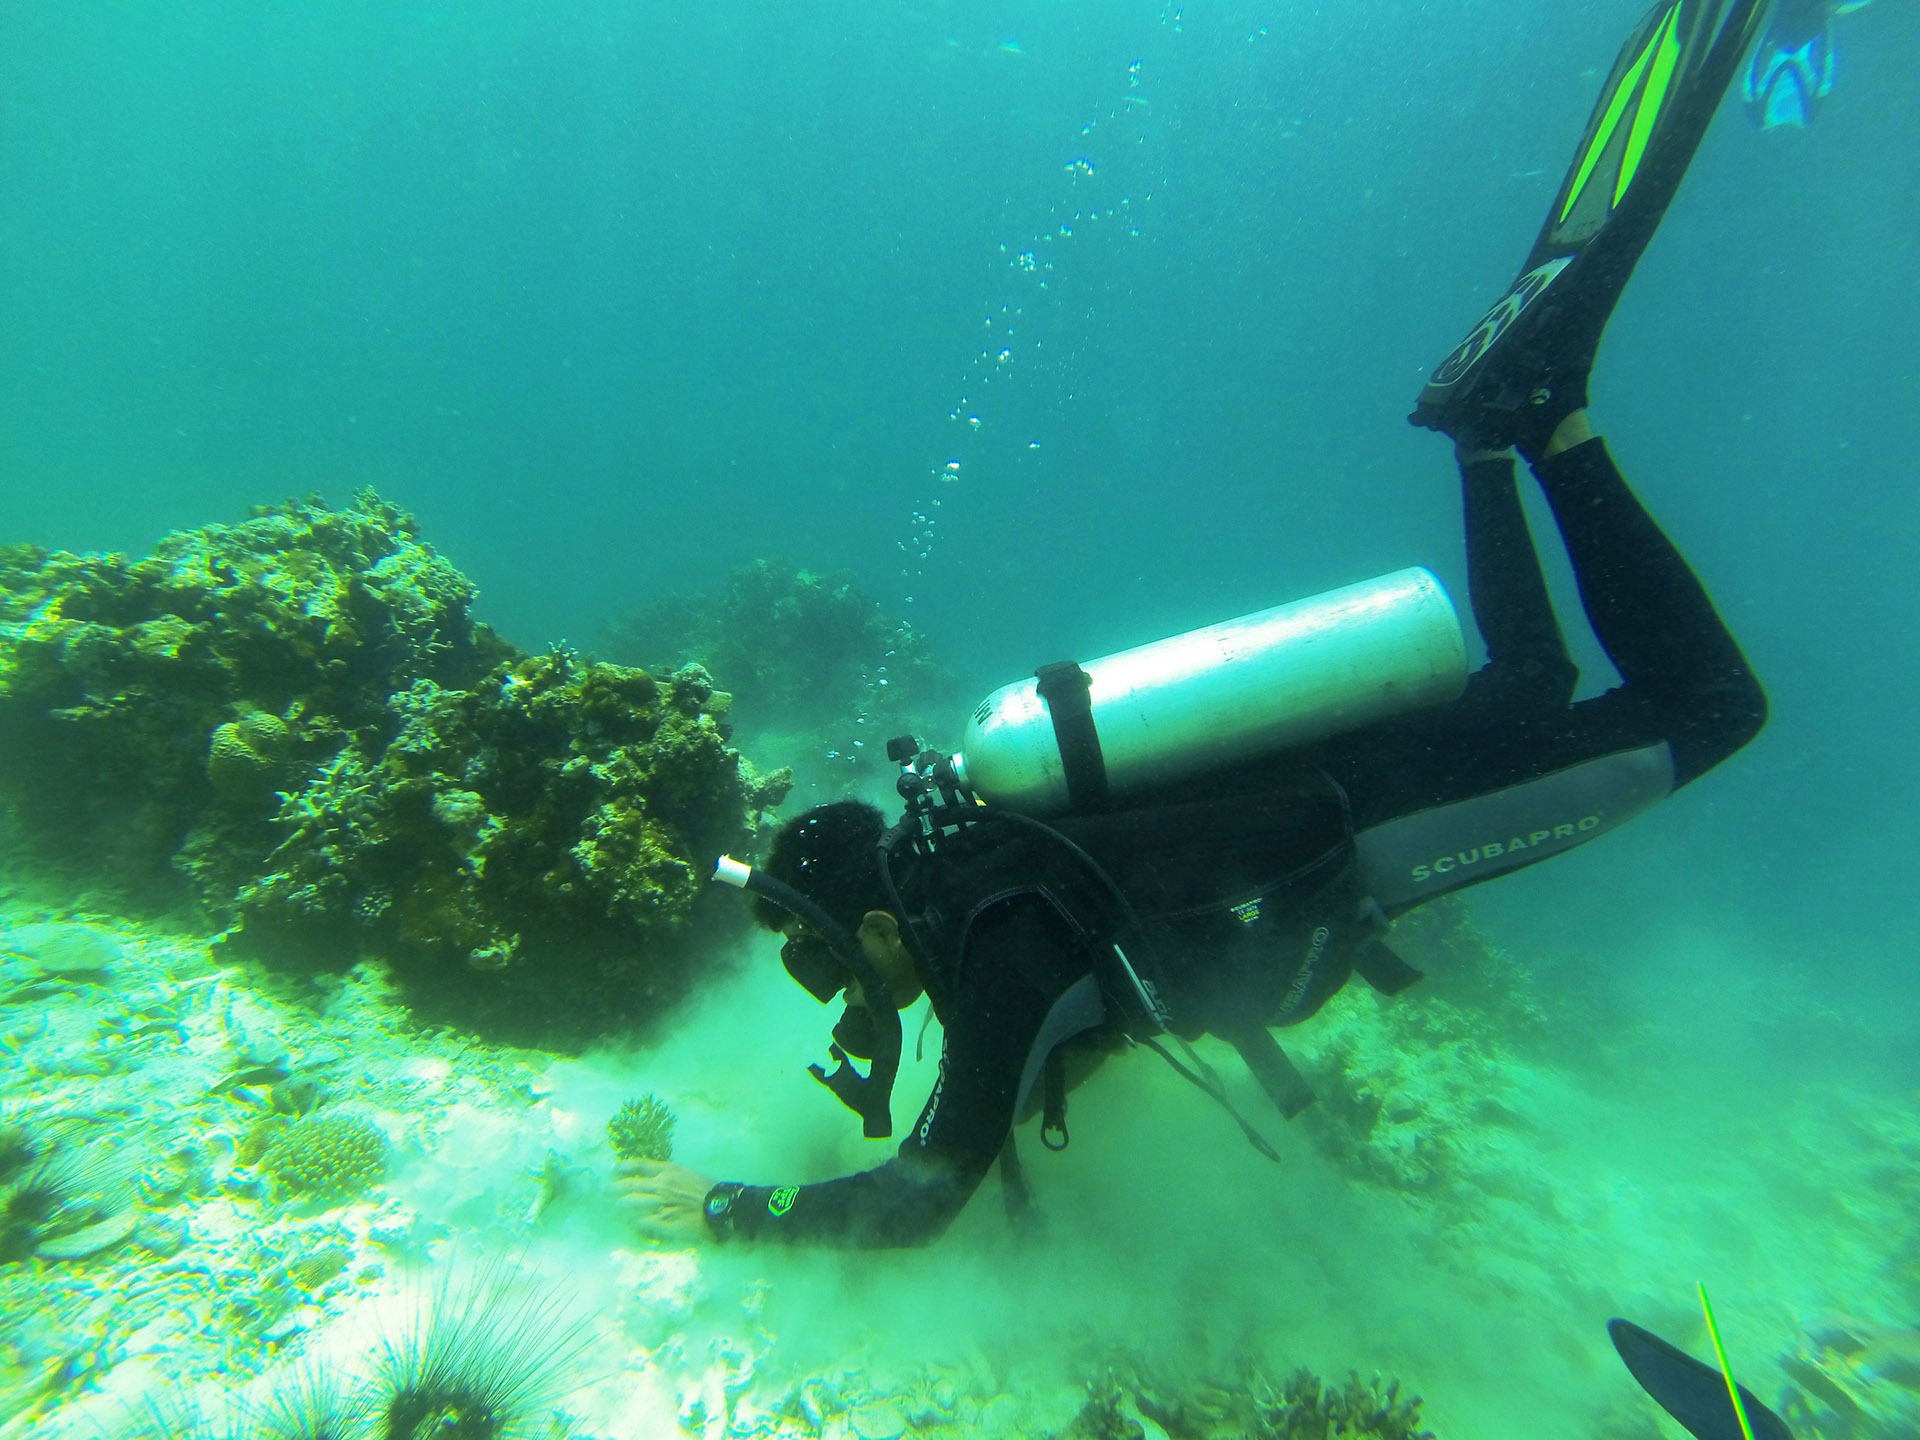 Diver on seabed